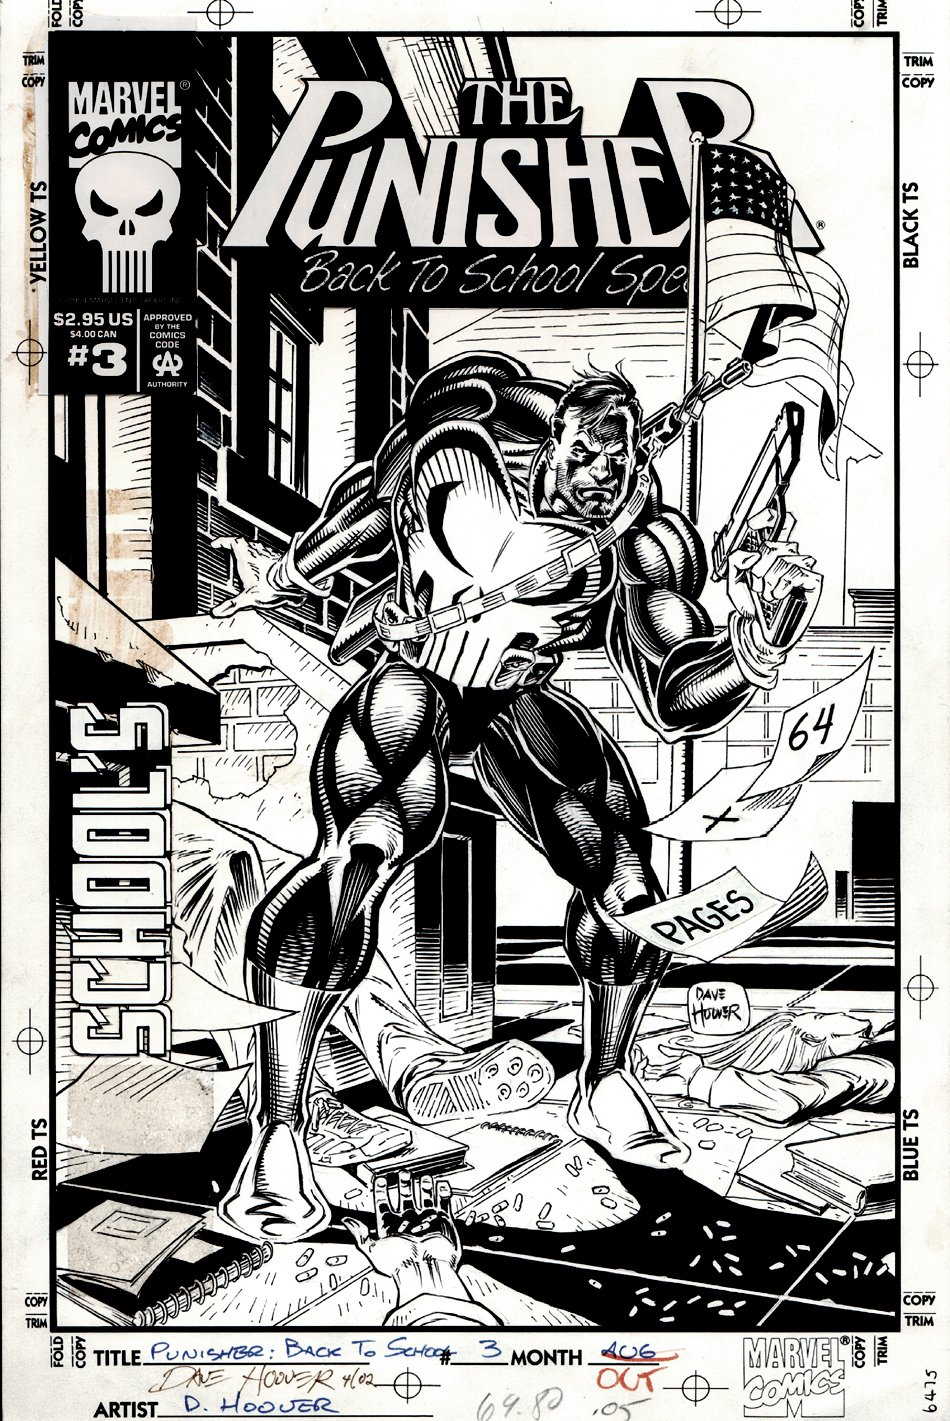 Punisher Back to School Special #3 Cover (1994)